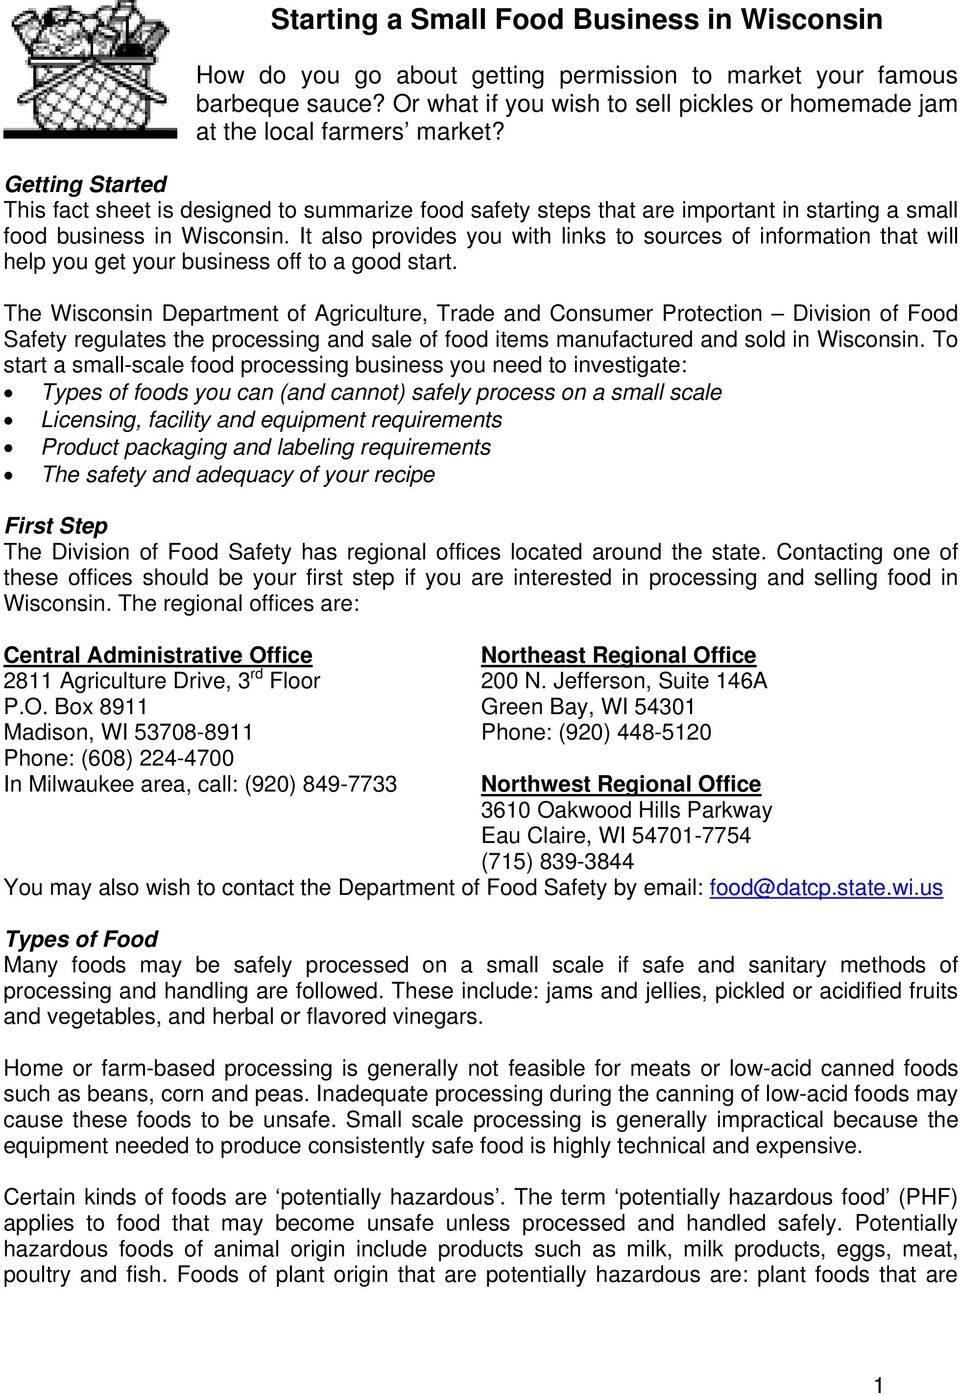 Getting Started This fact sheet is designed to summarize food safety steps that are important in starting a small food business in Wisconsin.